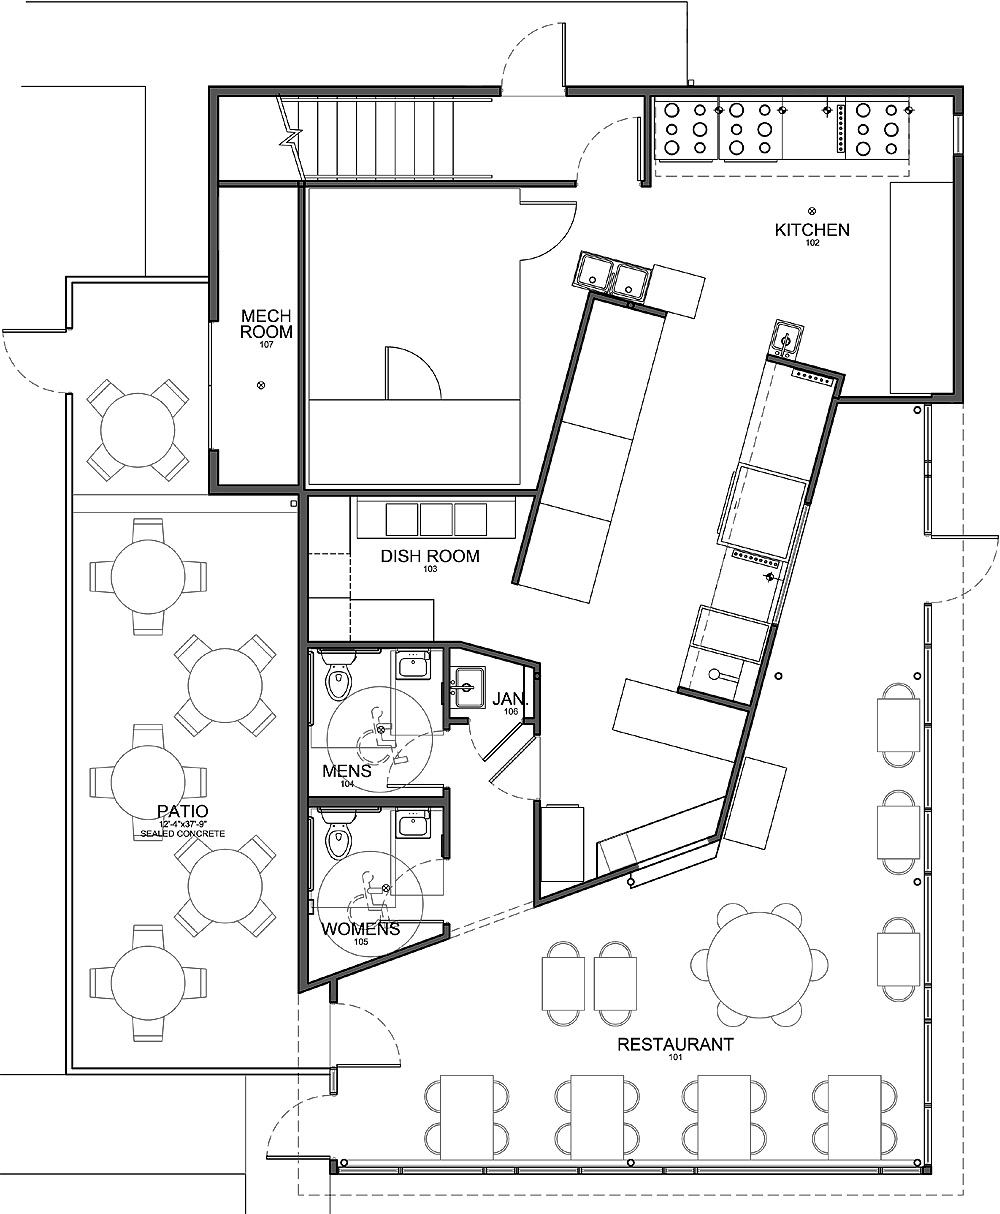 Commercial kitchen floor plans find house plans for Floor plan search